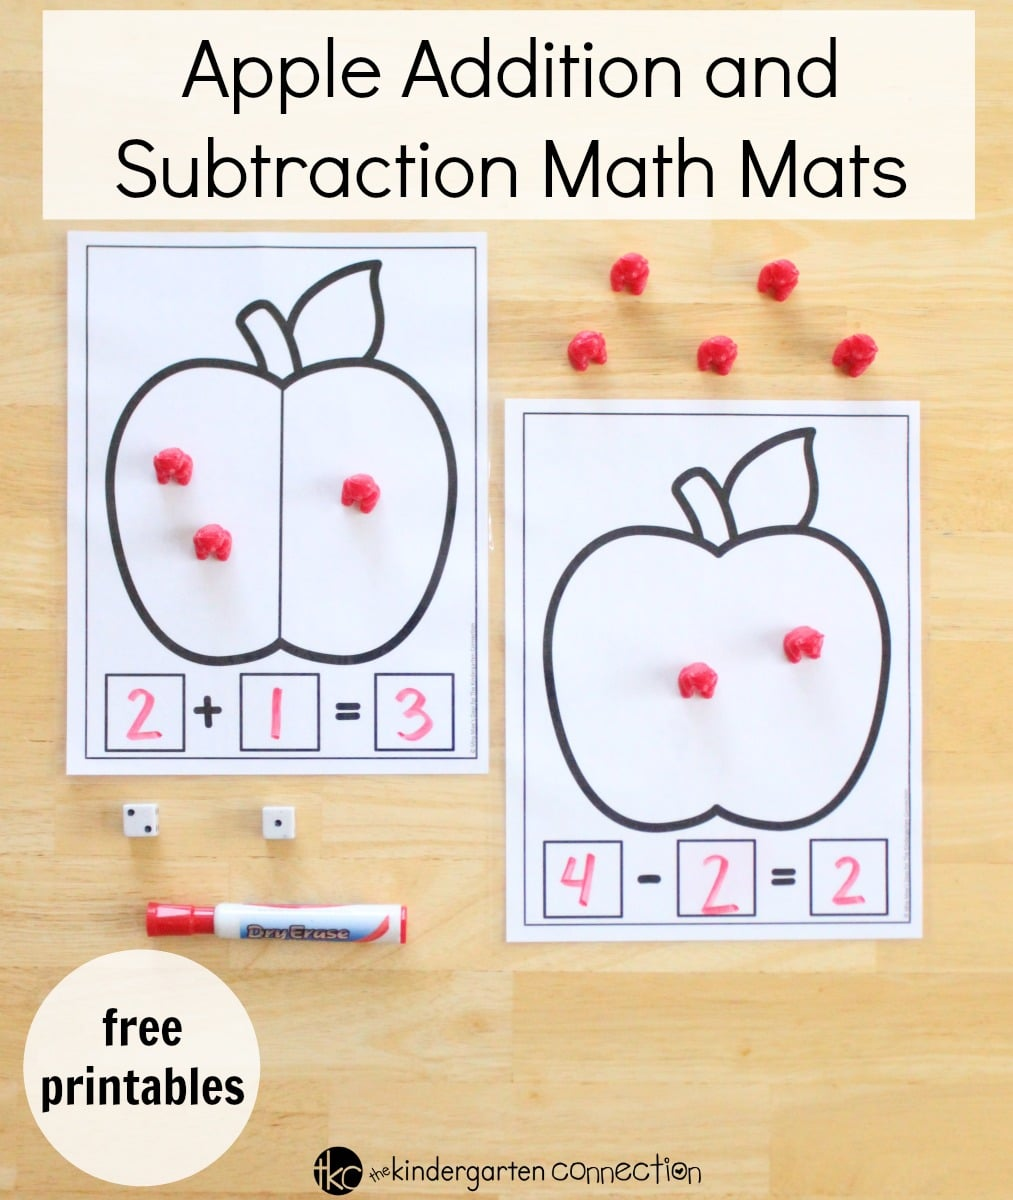 Math mats are easy to put together and gives students hands on application of addition and subtraction. You are going to fall in love with these Apple Addition and Subtraction Fall Math Mats!